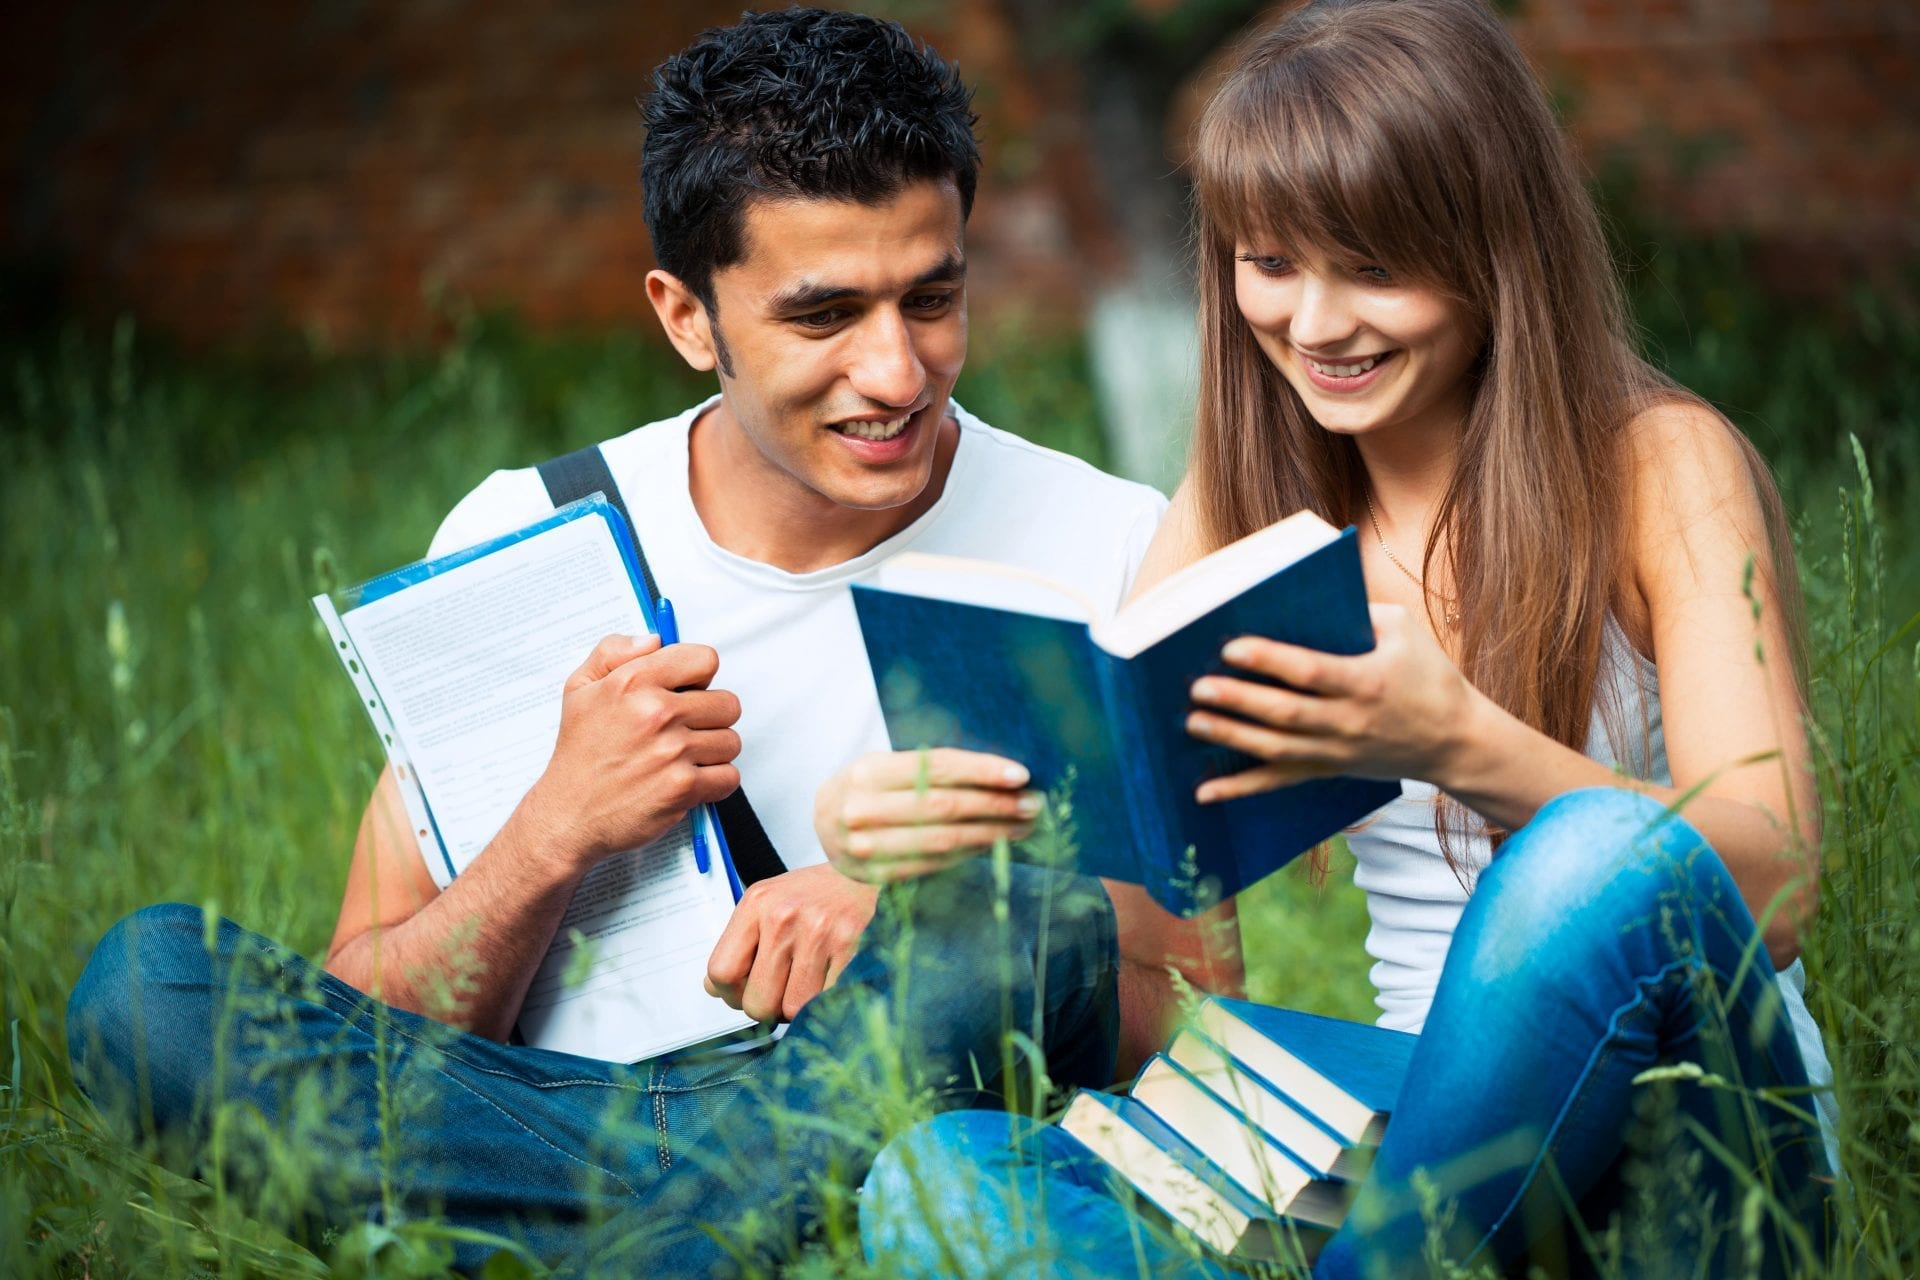 two-students-studying-in-park-on-grass-PD68WLH-min